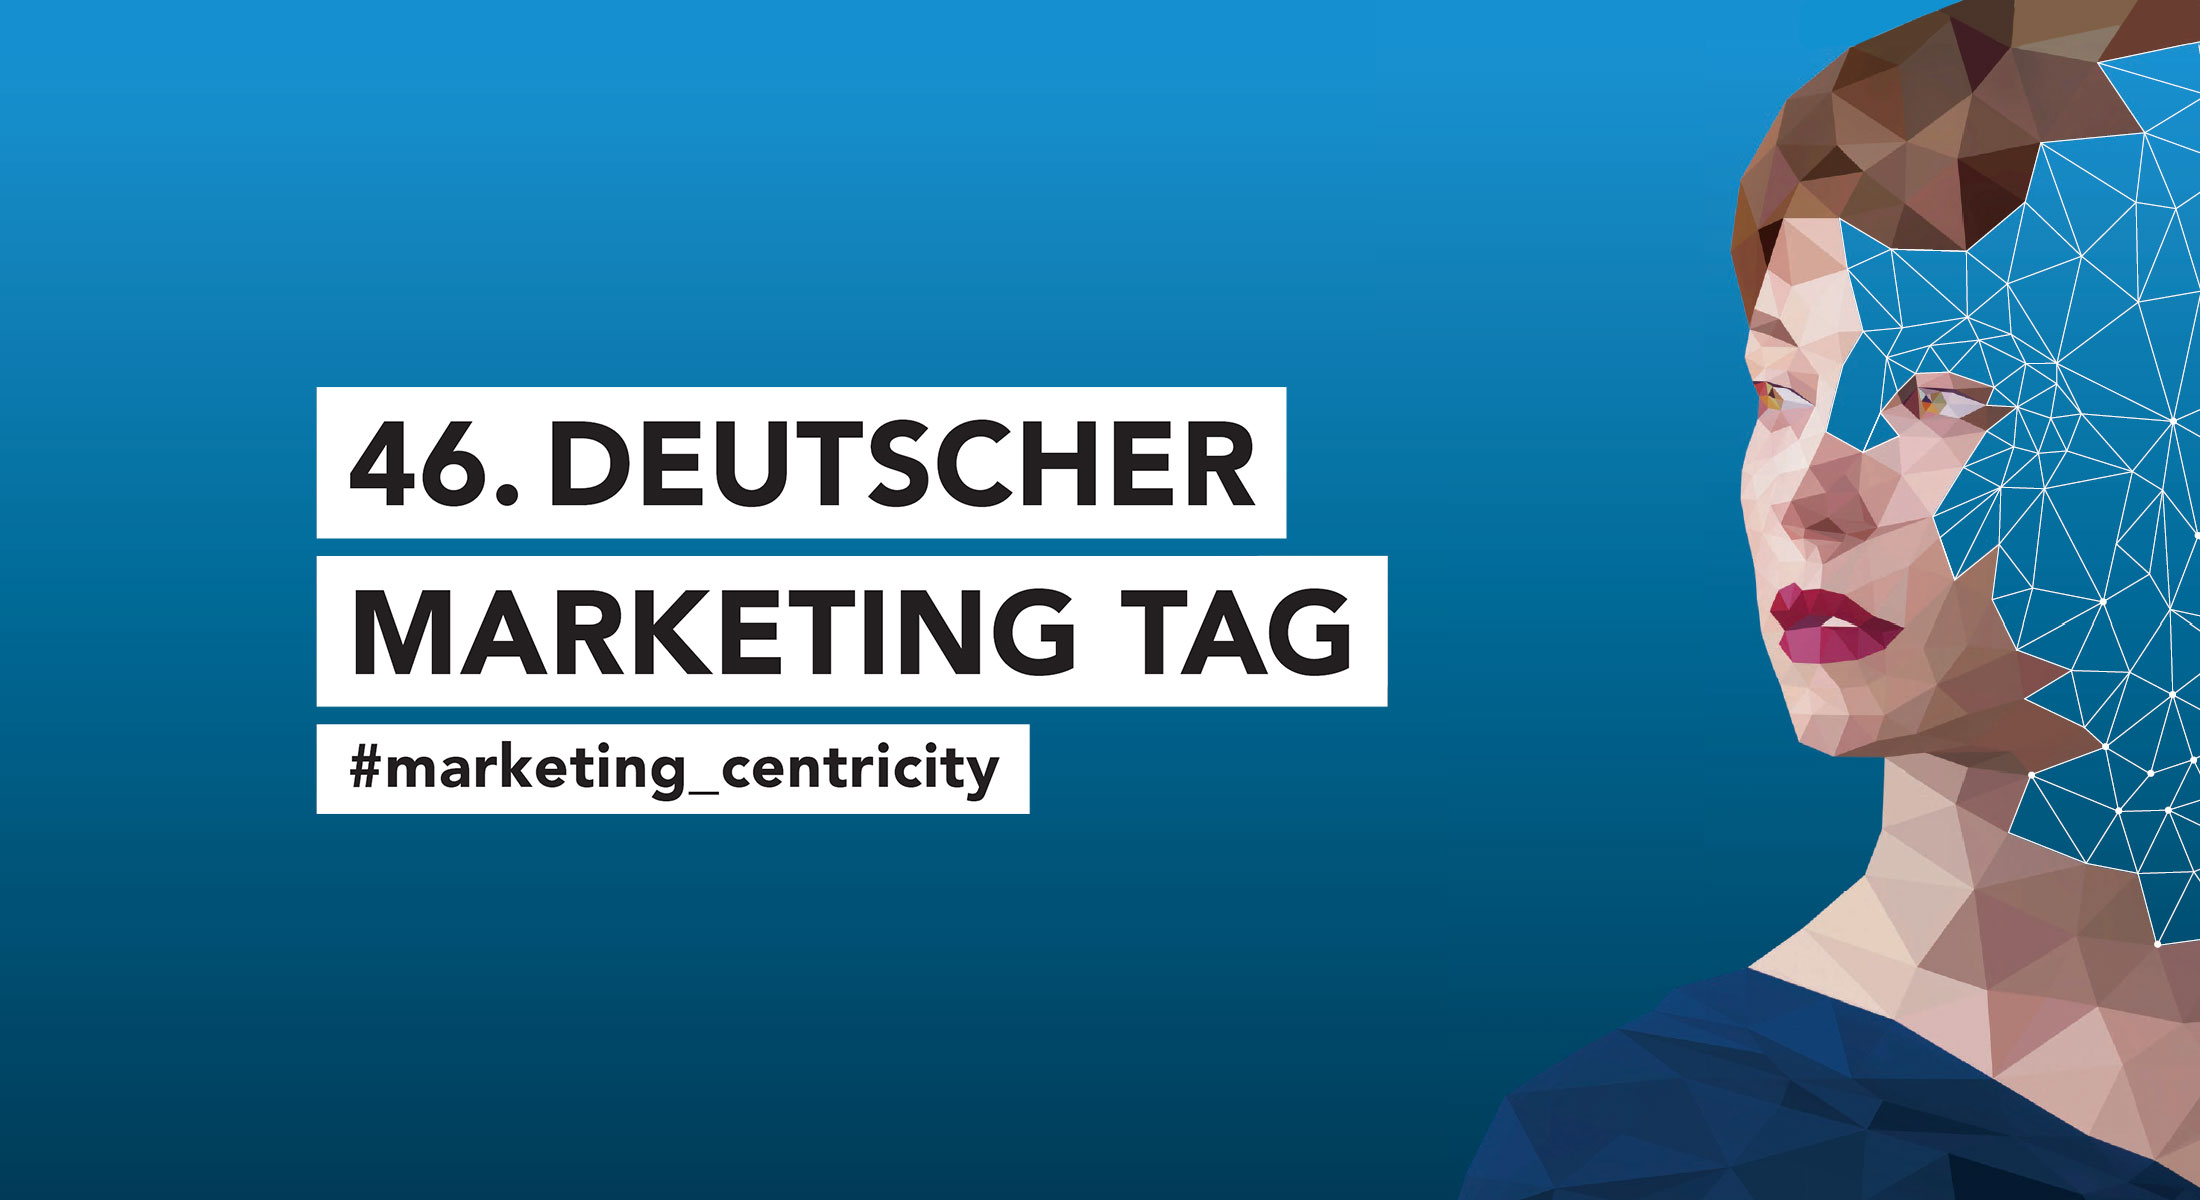 Marketing Club Region Stuttgart-Heilbronn Veranstaltung: 46. Deutscher Marketing Tag